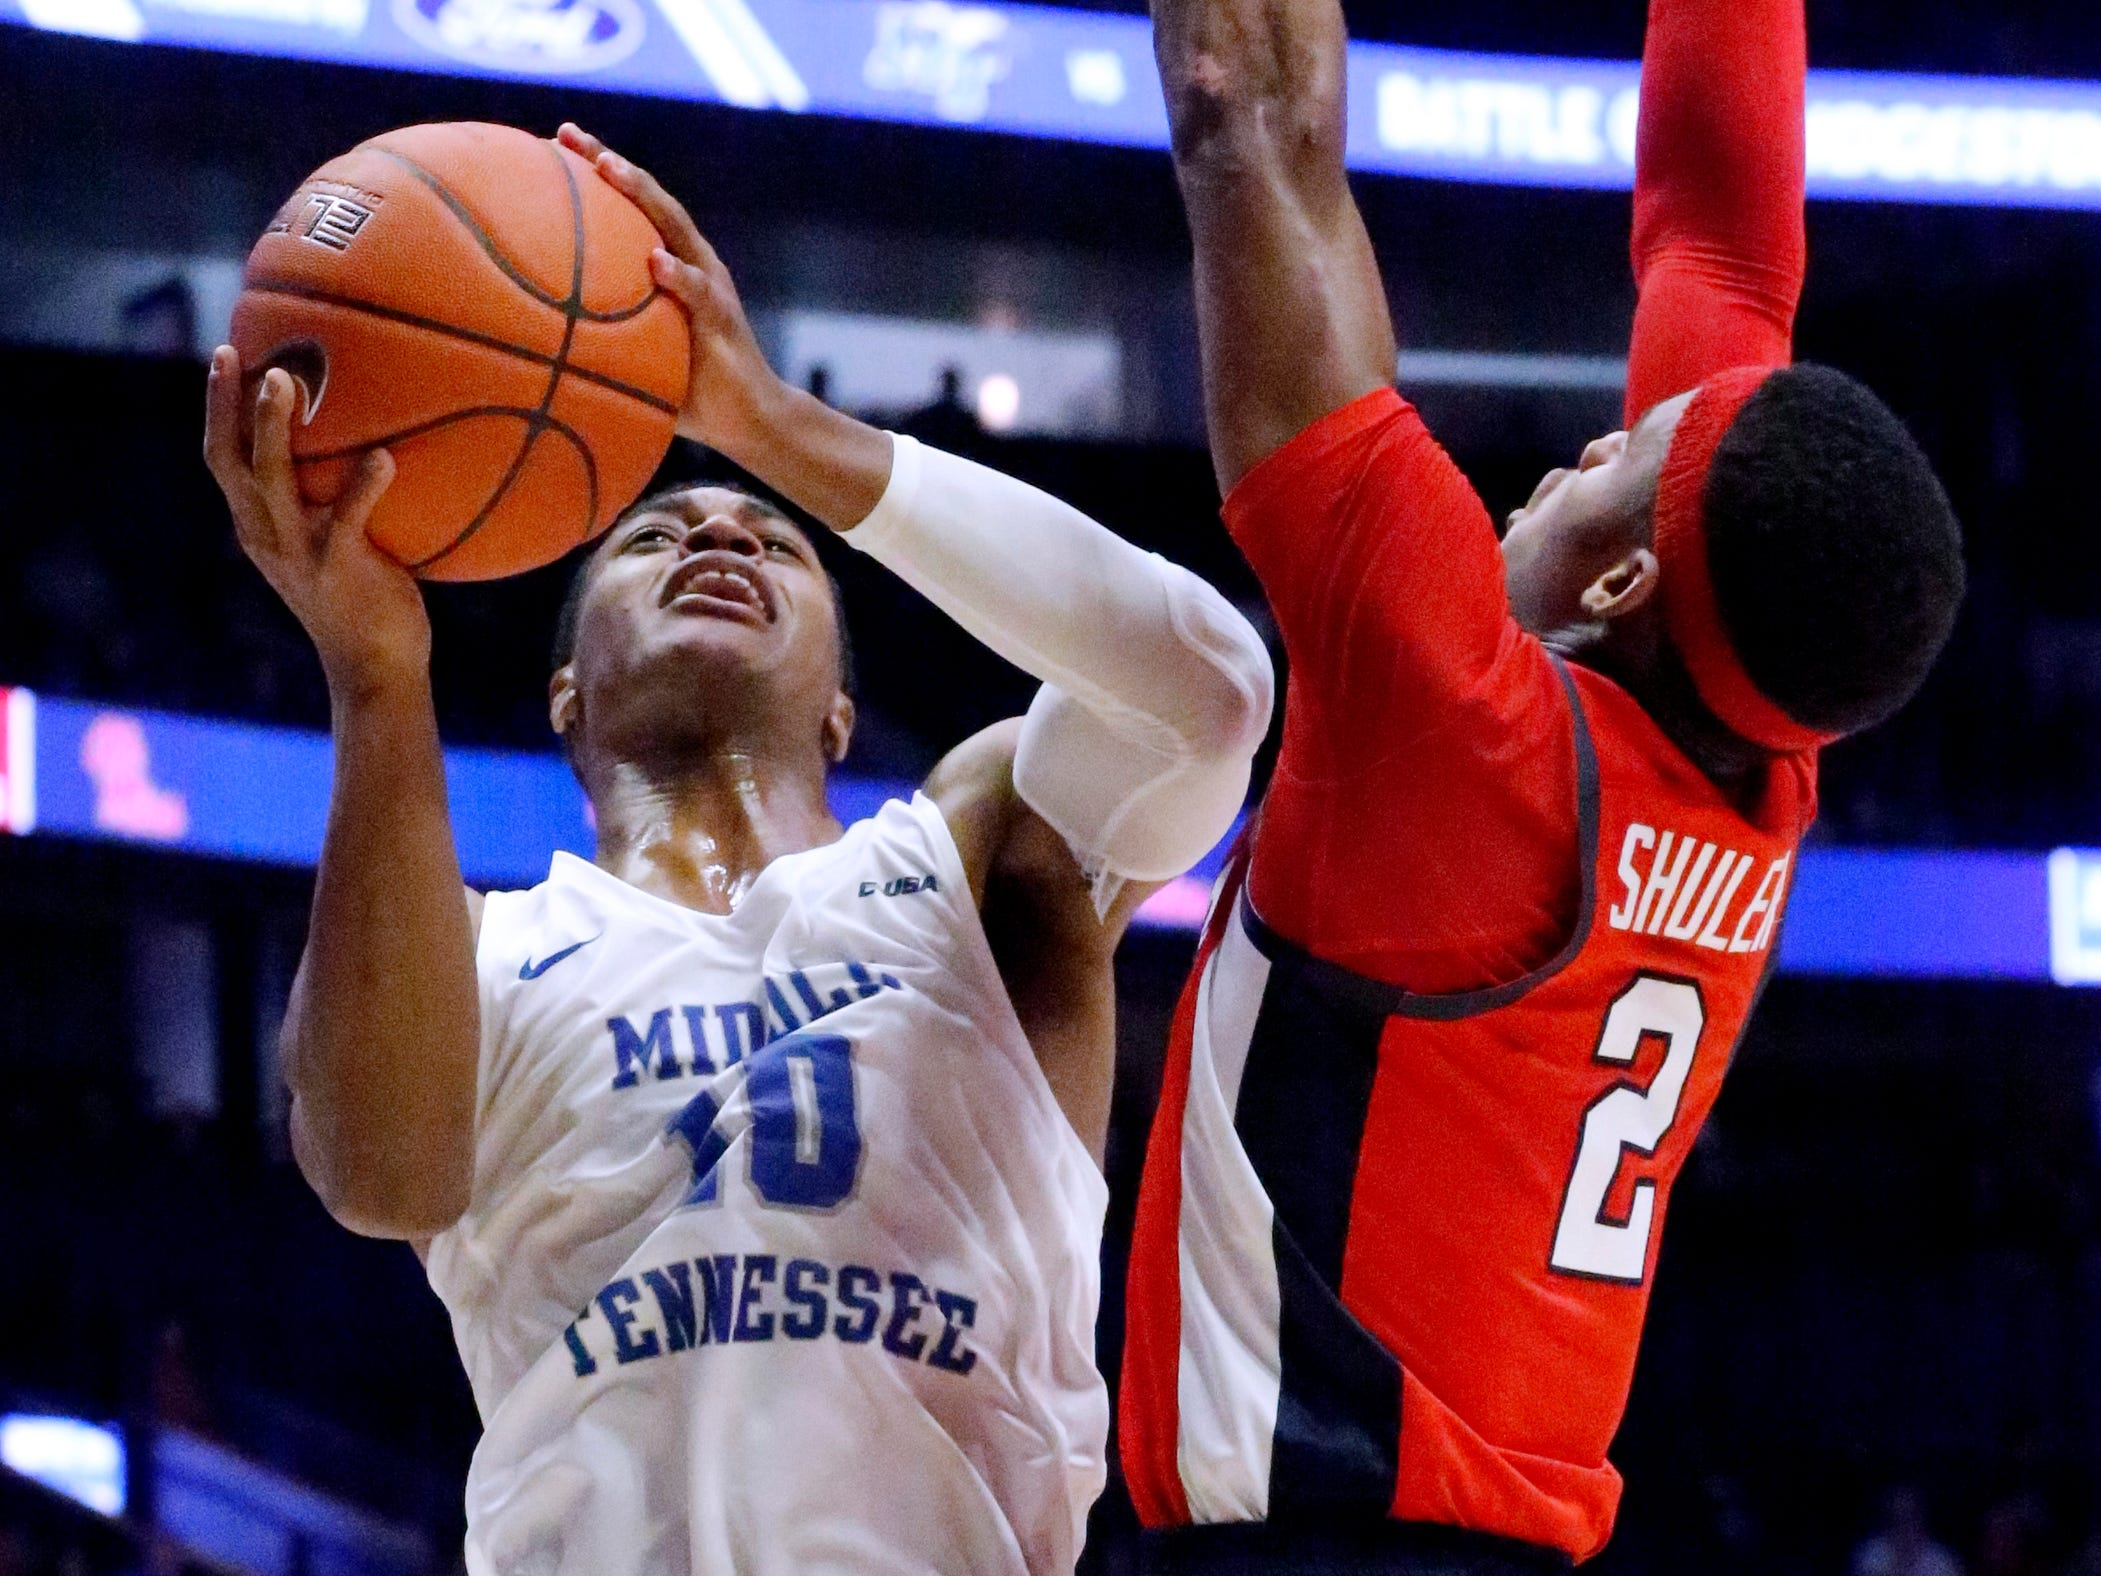 MTSU's guard Jayce Johnson (10) shoots the ball as Ole Miss' guard Devontae Shuler (2) guards him on Friday Dec. 21, 2018, at Bridgestone Arena.